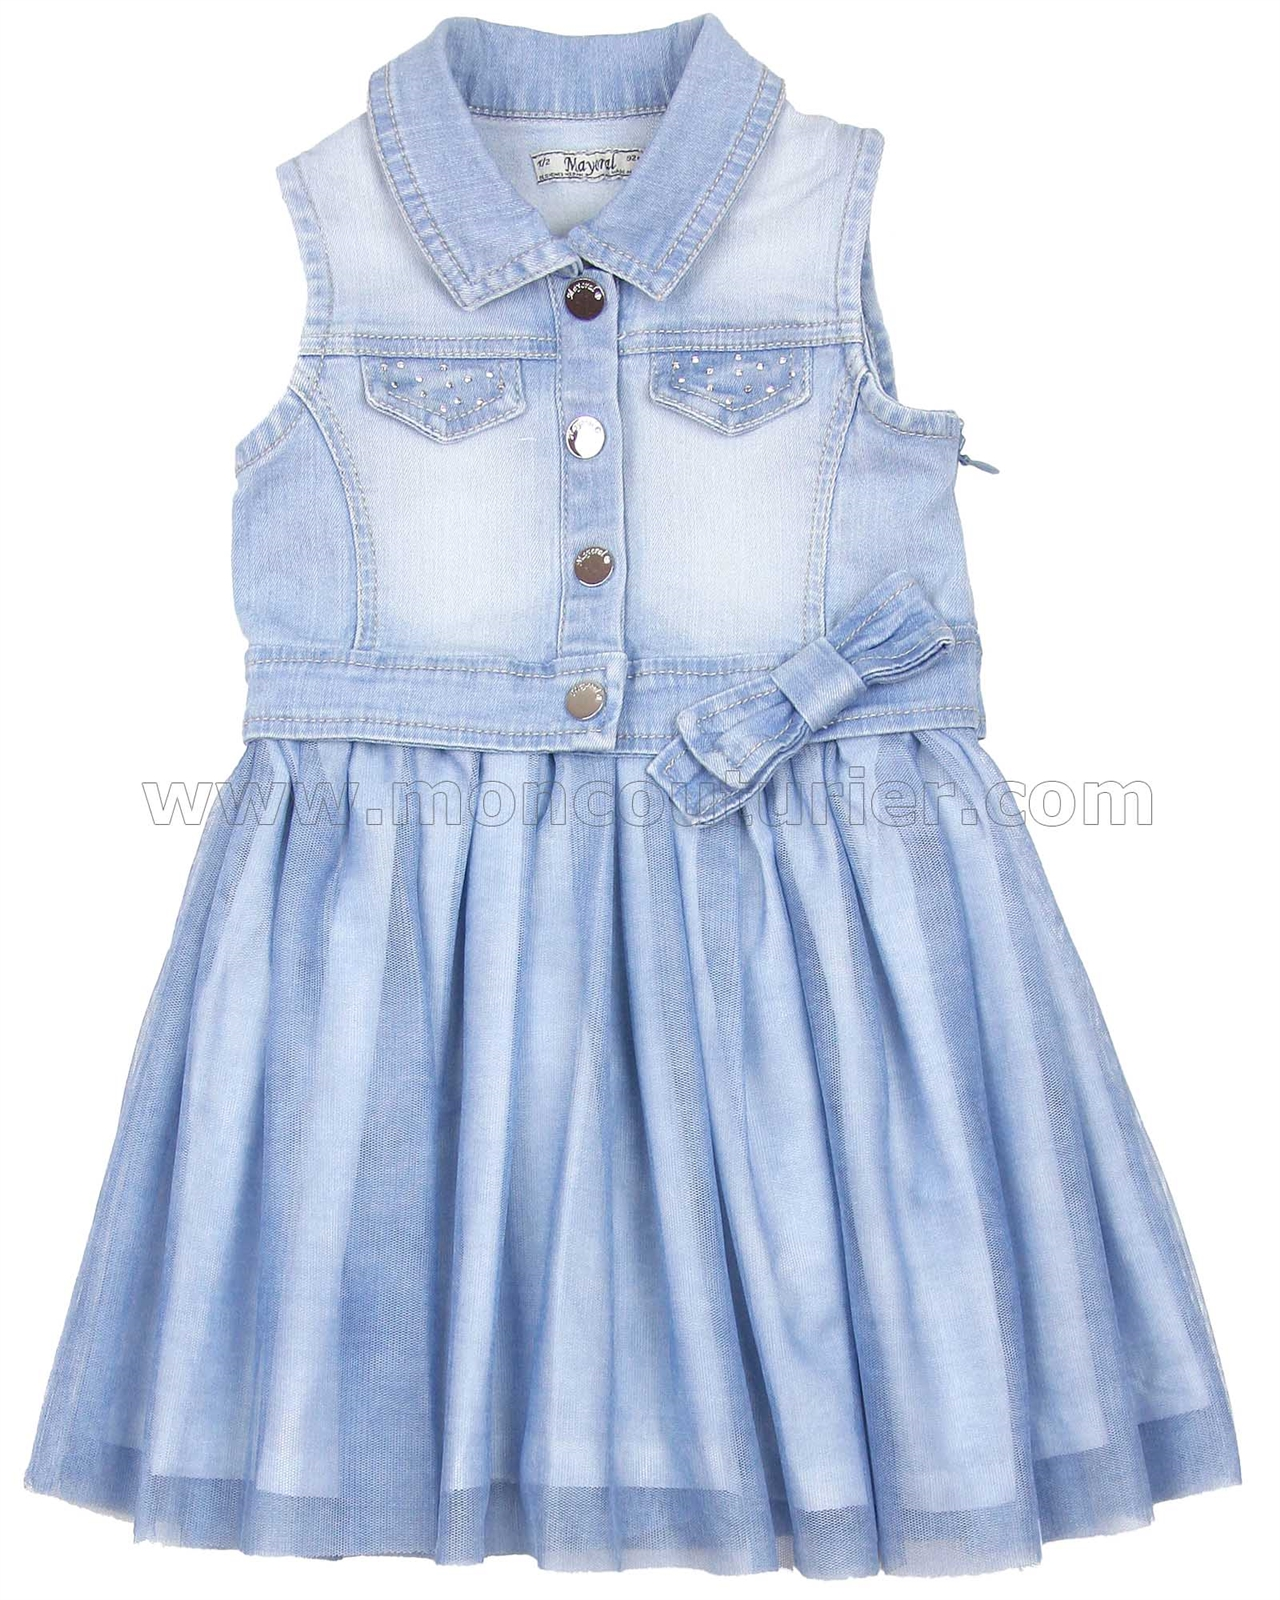 71ad78fe4b6d Mayoral Girl s Denim Combo Dress - Mayoral - Mayoral Spring Summer 2017